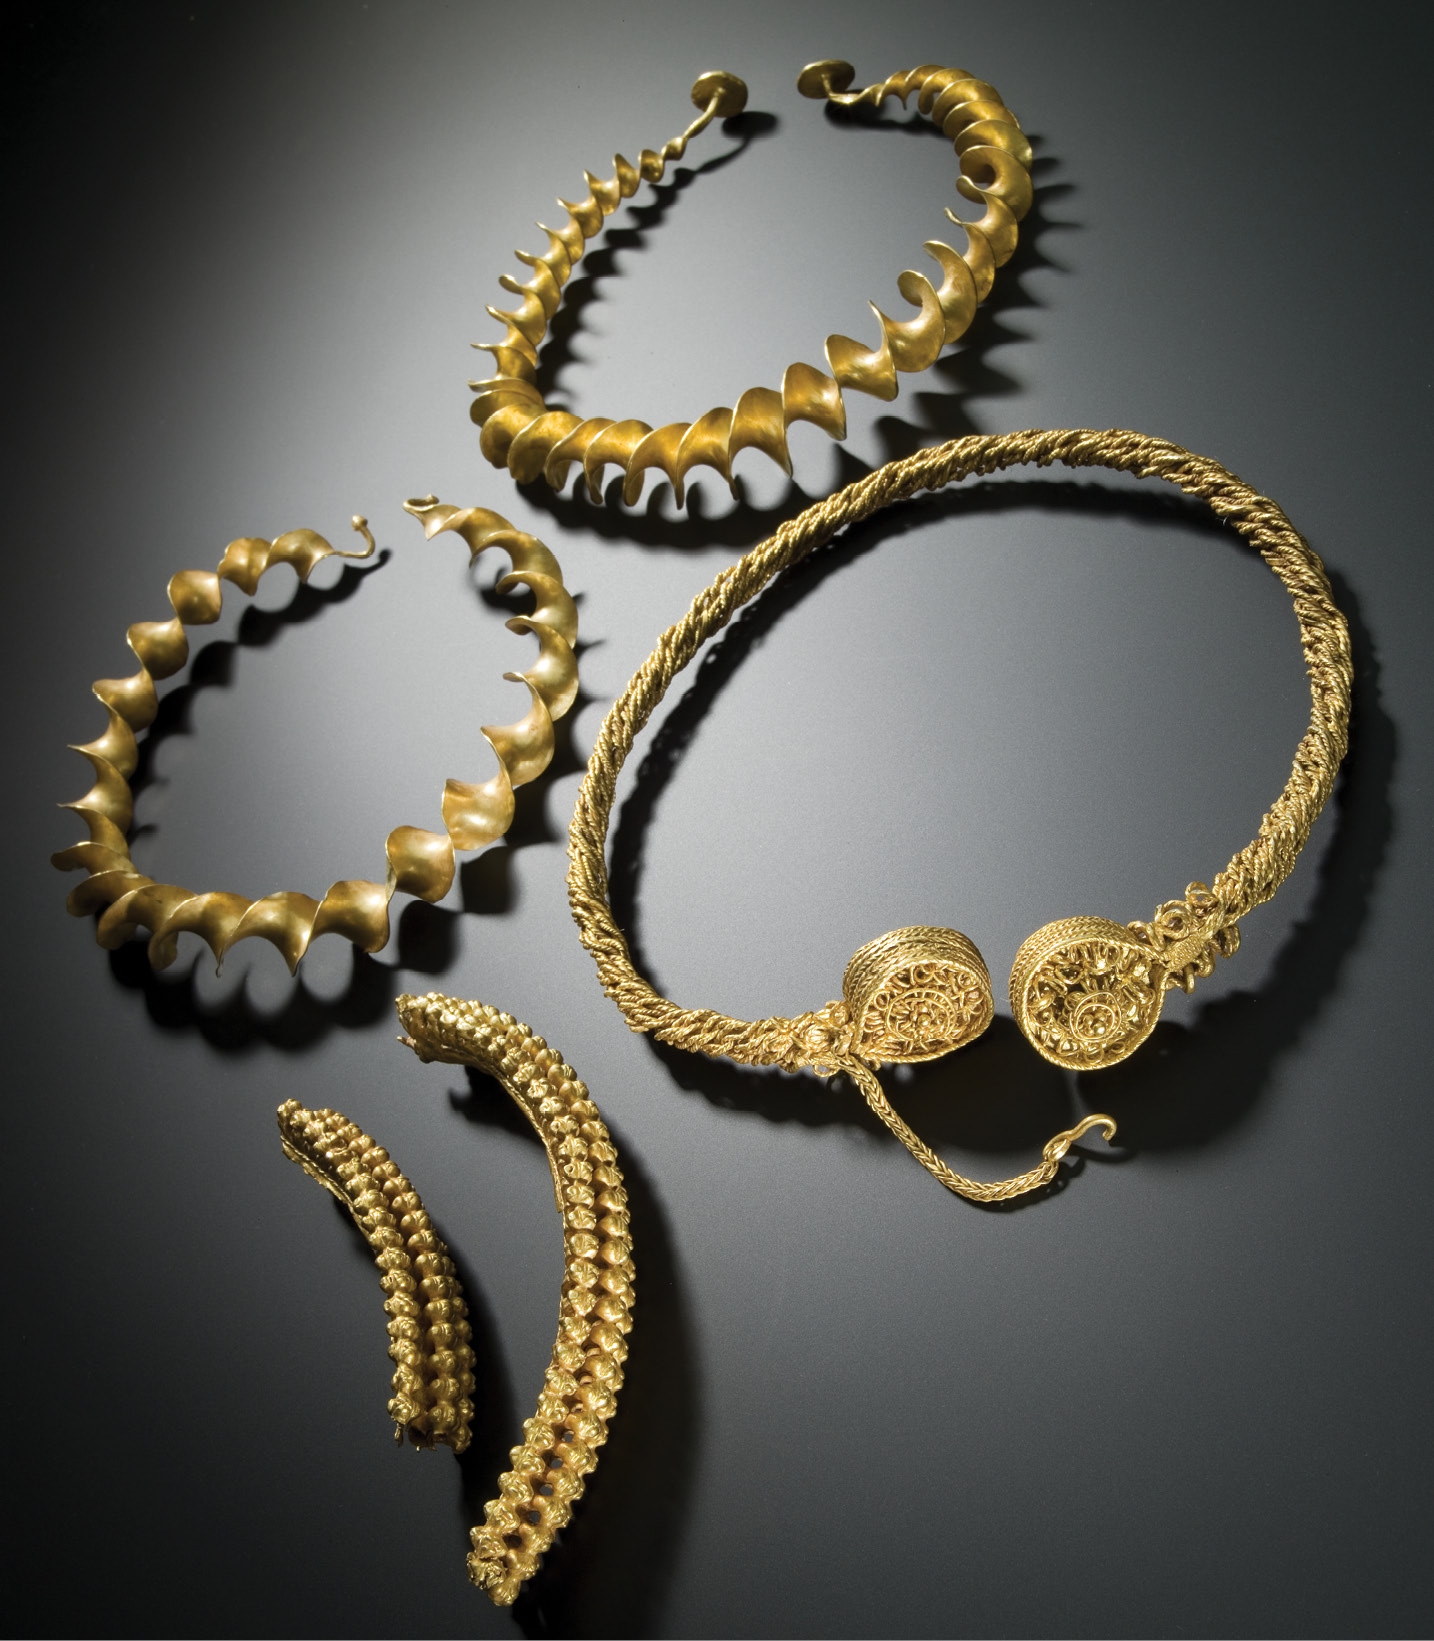 LEFT During later prehistory, bogs attracted offerings ranging from everyday objects like farming tools and food vessels to more valuable artefacts. These gold torcs are known as the Stirling Hoard, an Iron Age collection of jewellery found in boggy ground near Flanders Moss, Perthshire; they combine indigenous and Mediterranean design elements, and are today held by the National Museum of Scotland see www.nms.ac.uk/explore-our-collections/stories/scottish-history-and-archaeology/iron-age-gold-torcs/ for more information.